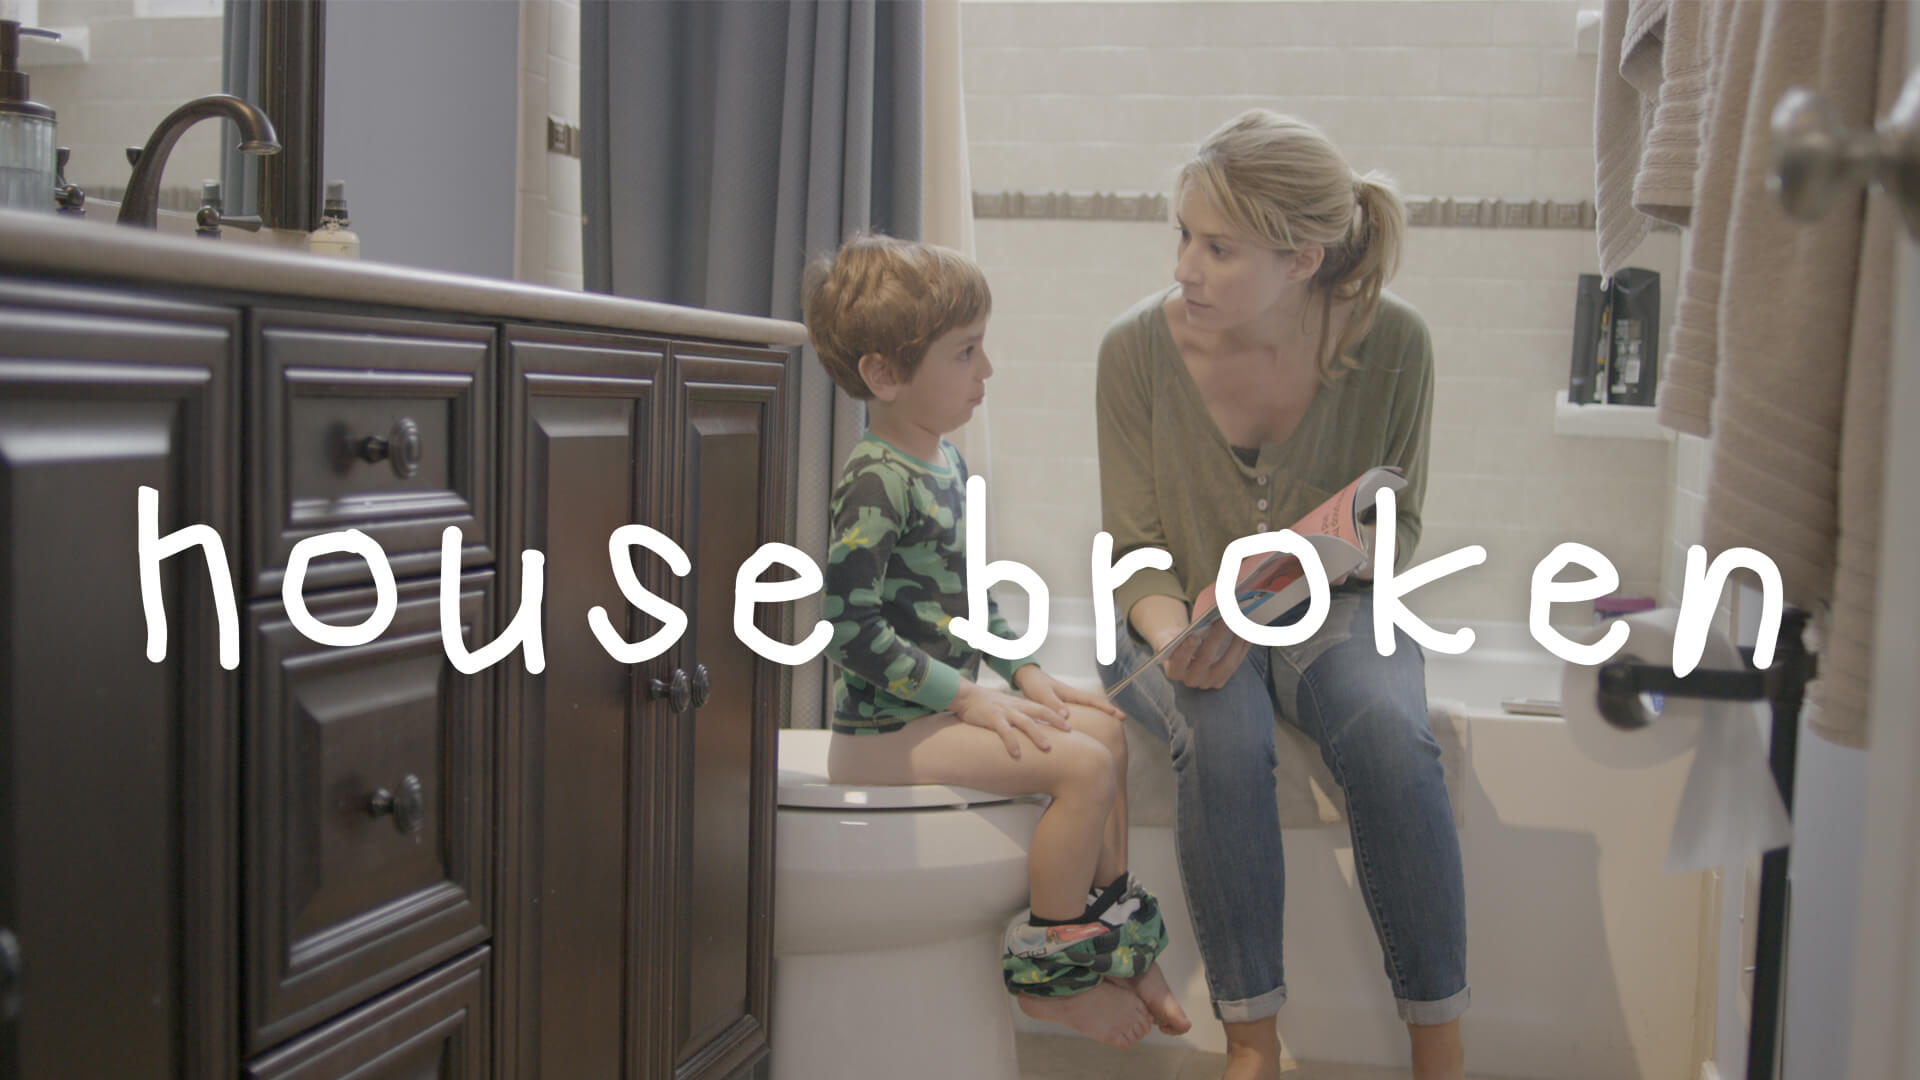 House Broken short film